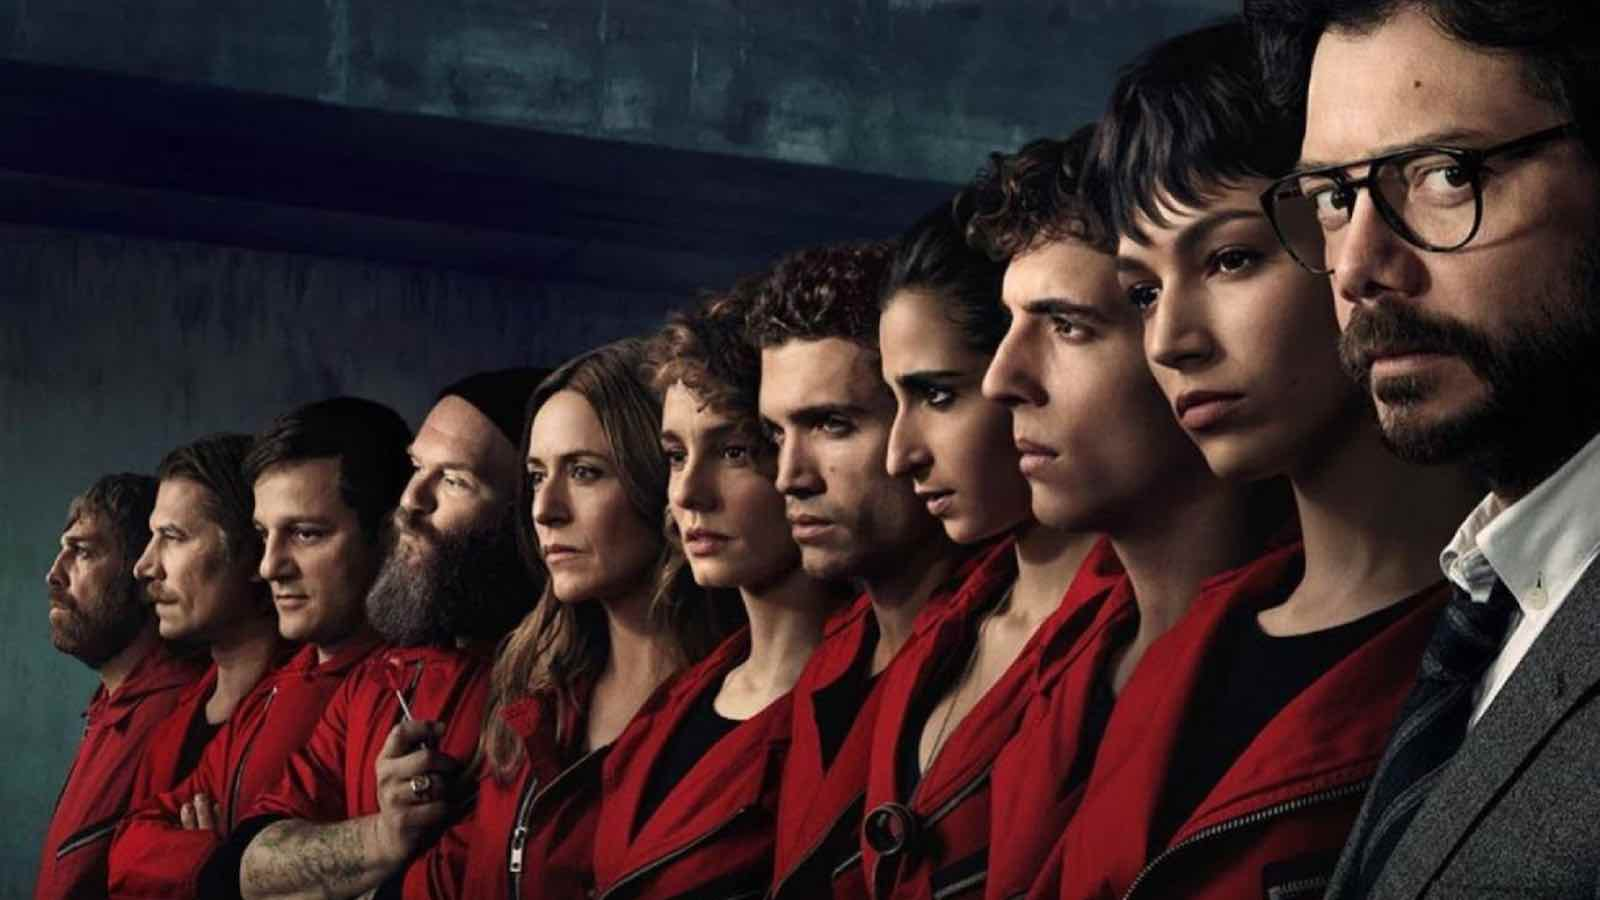 Part 4 is actually already filmed. We're salivating at the thought, since Netflix's 'Money Heist' is some of the most gripping television produced – ever.